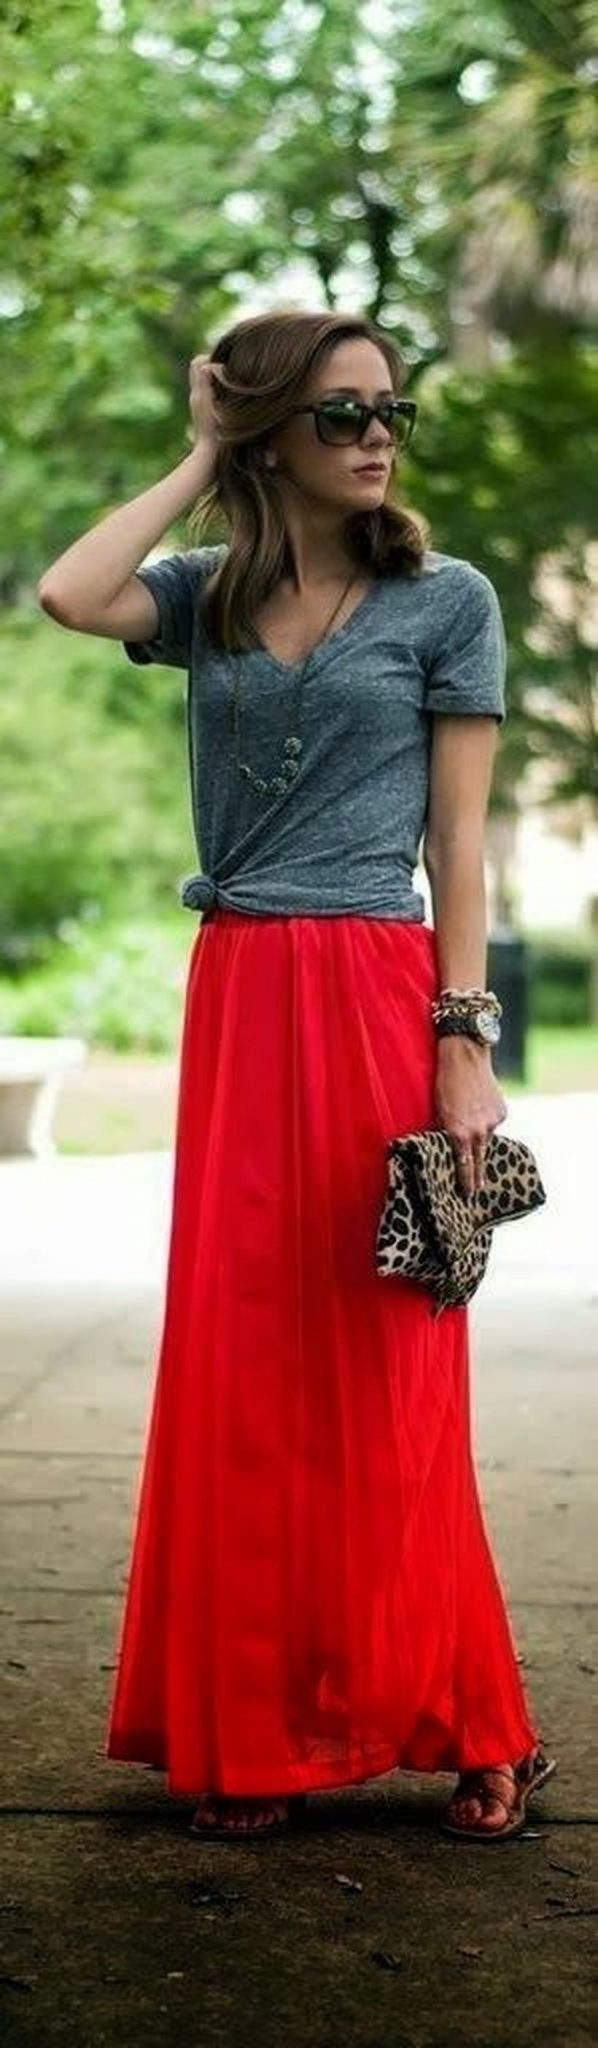 Cool tshirt and skirt for everyday outfits 10